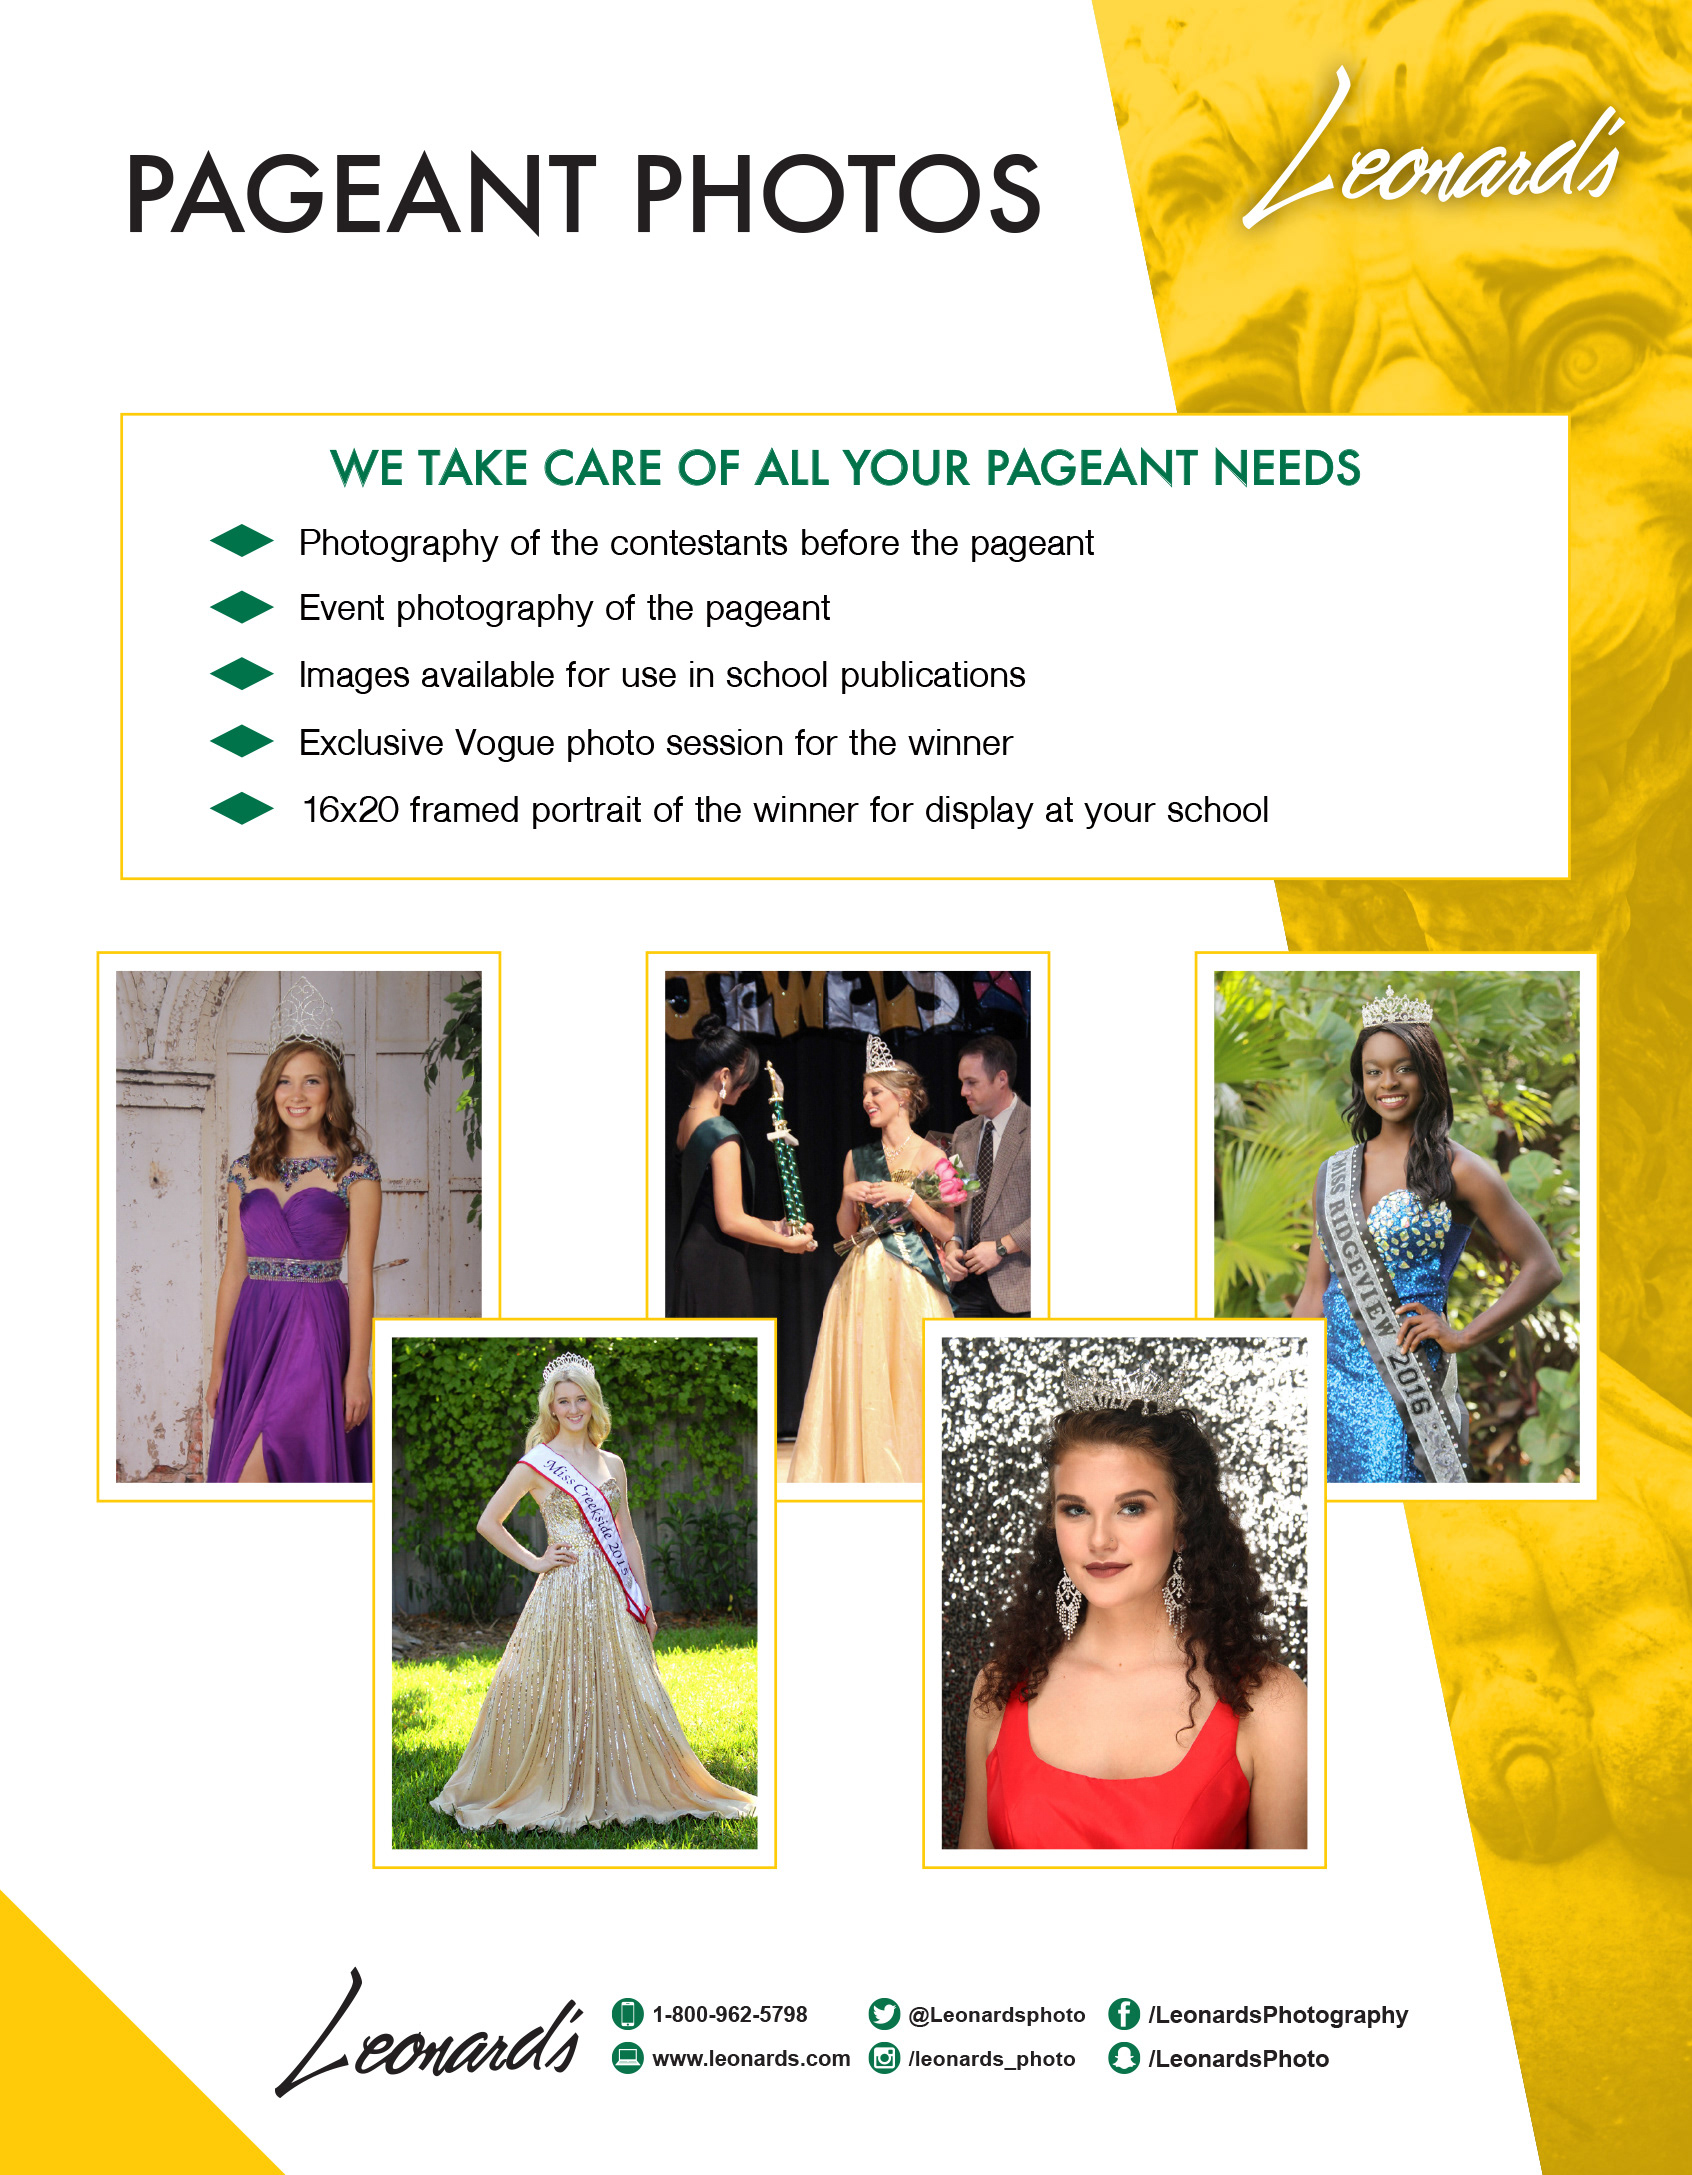 Leonards Photography Marketing Forms 2018 Series On Behance